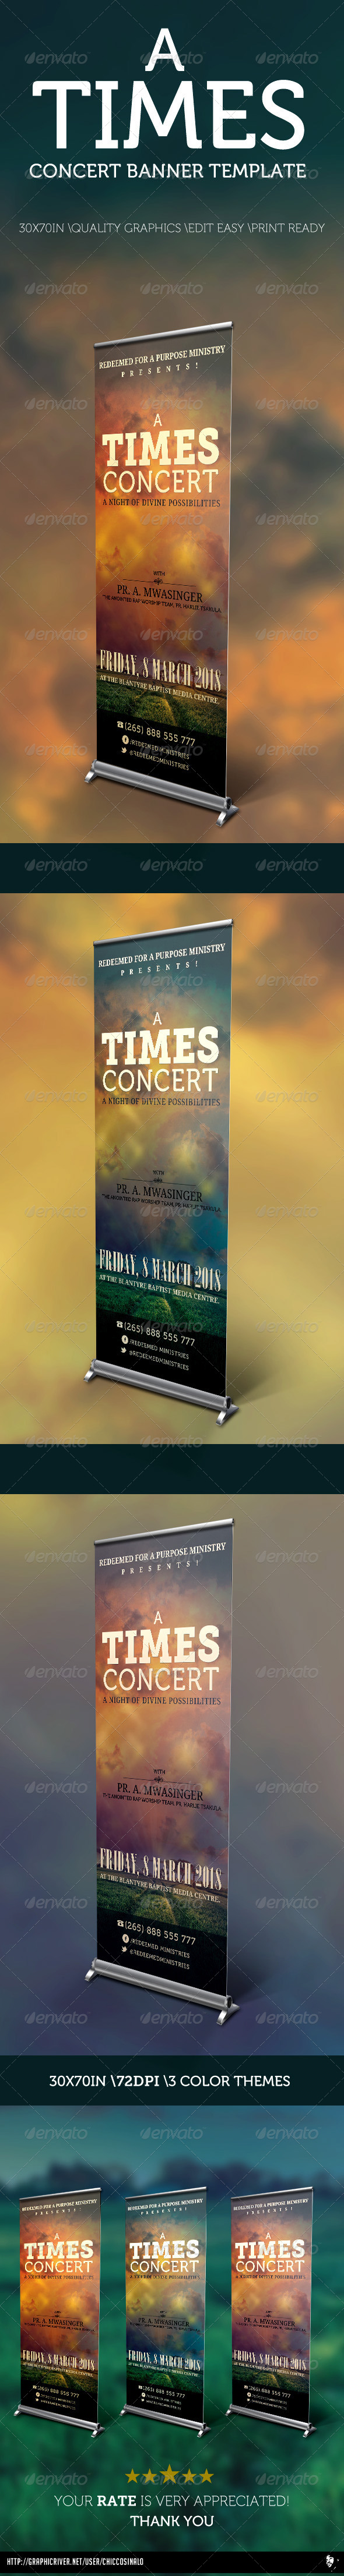 GraphicRiver A Times Concert Banner Template 4485116